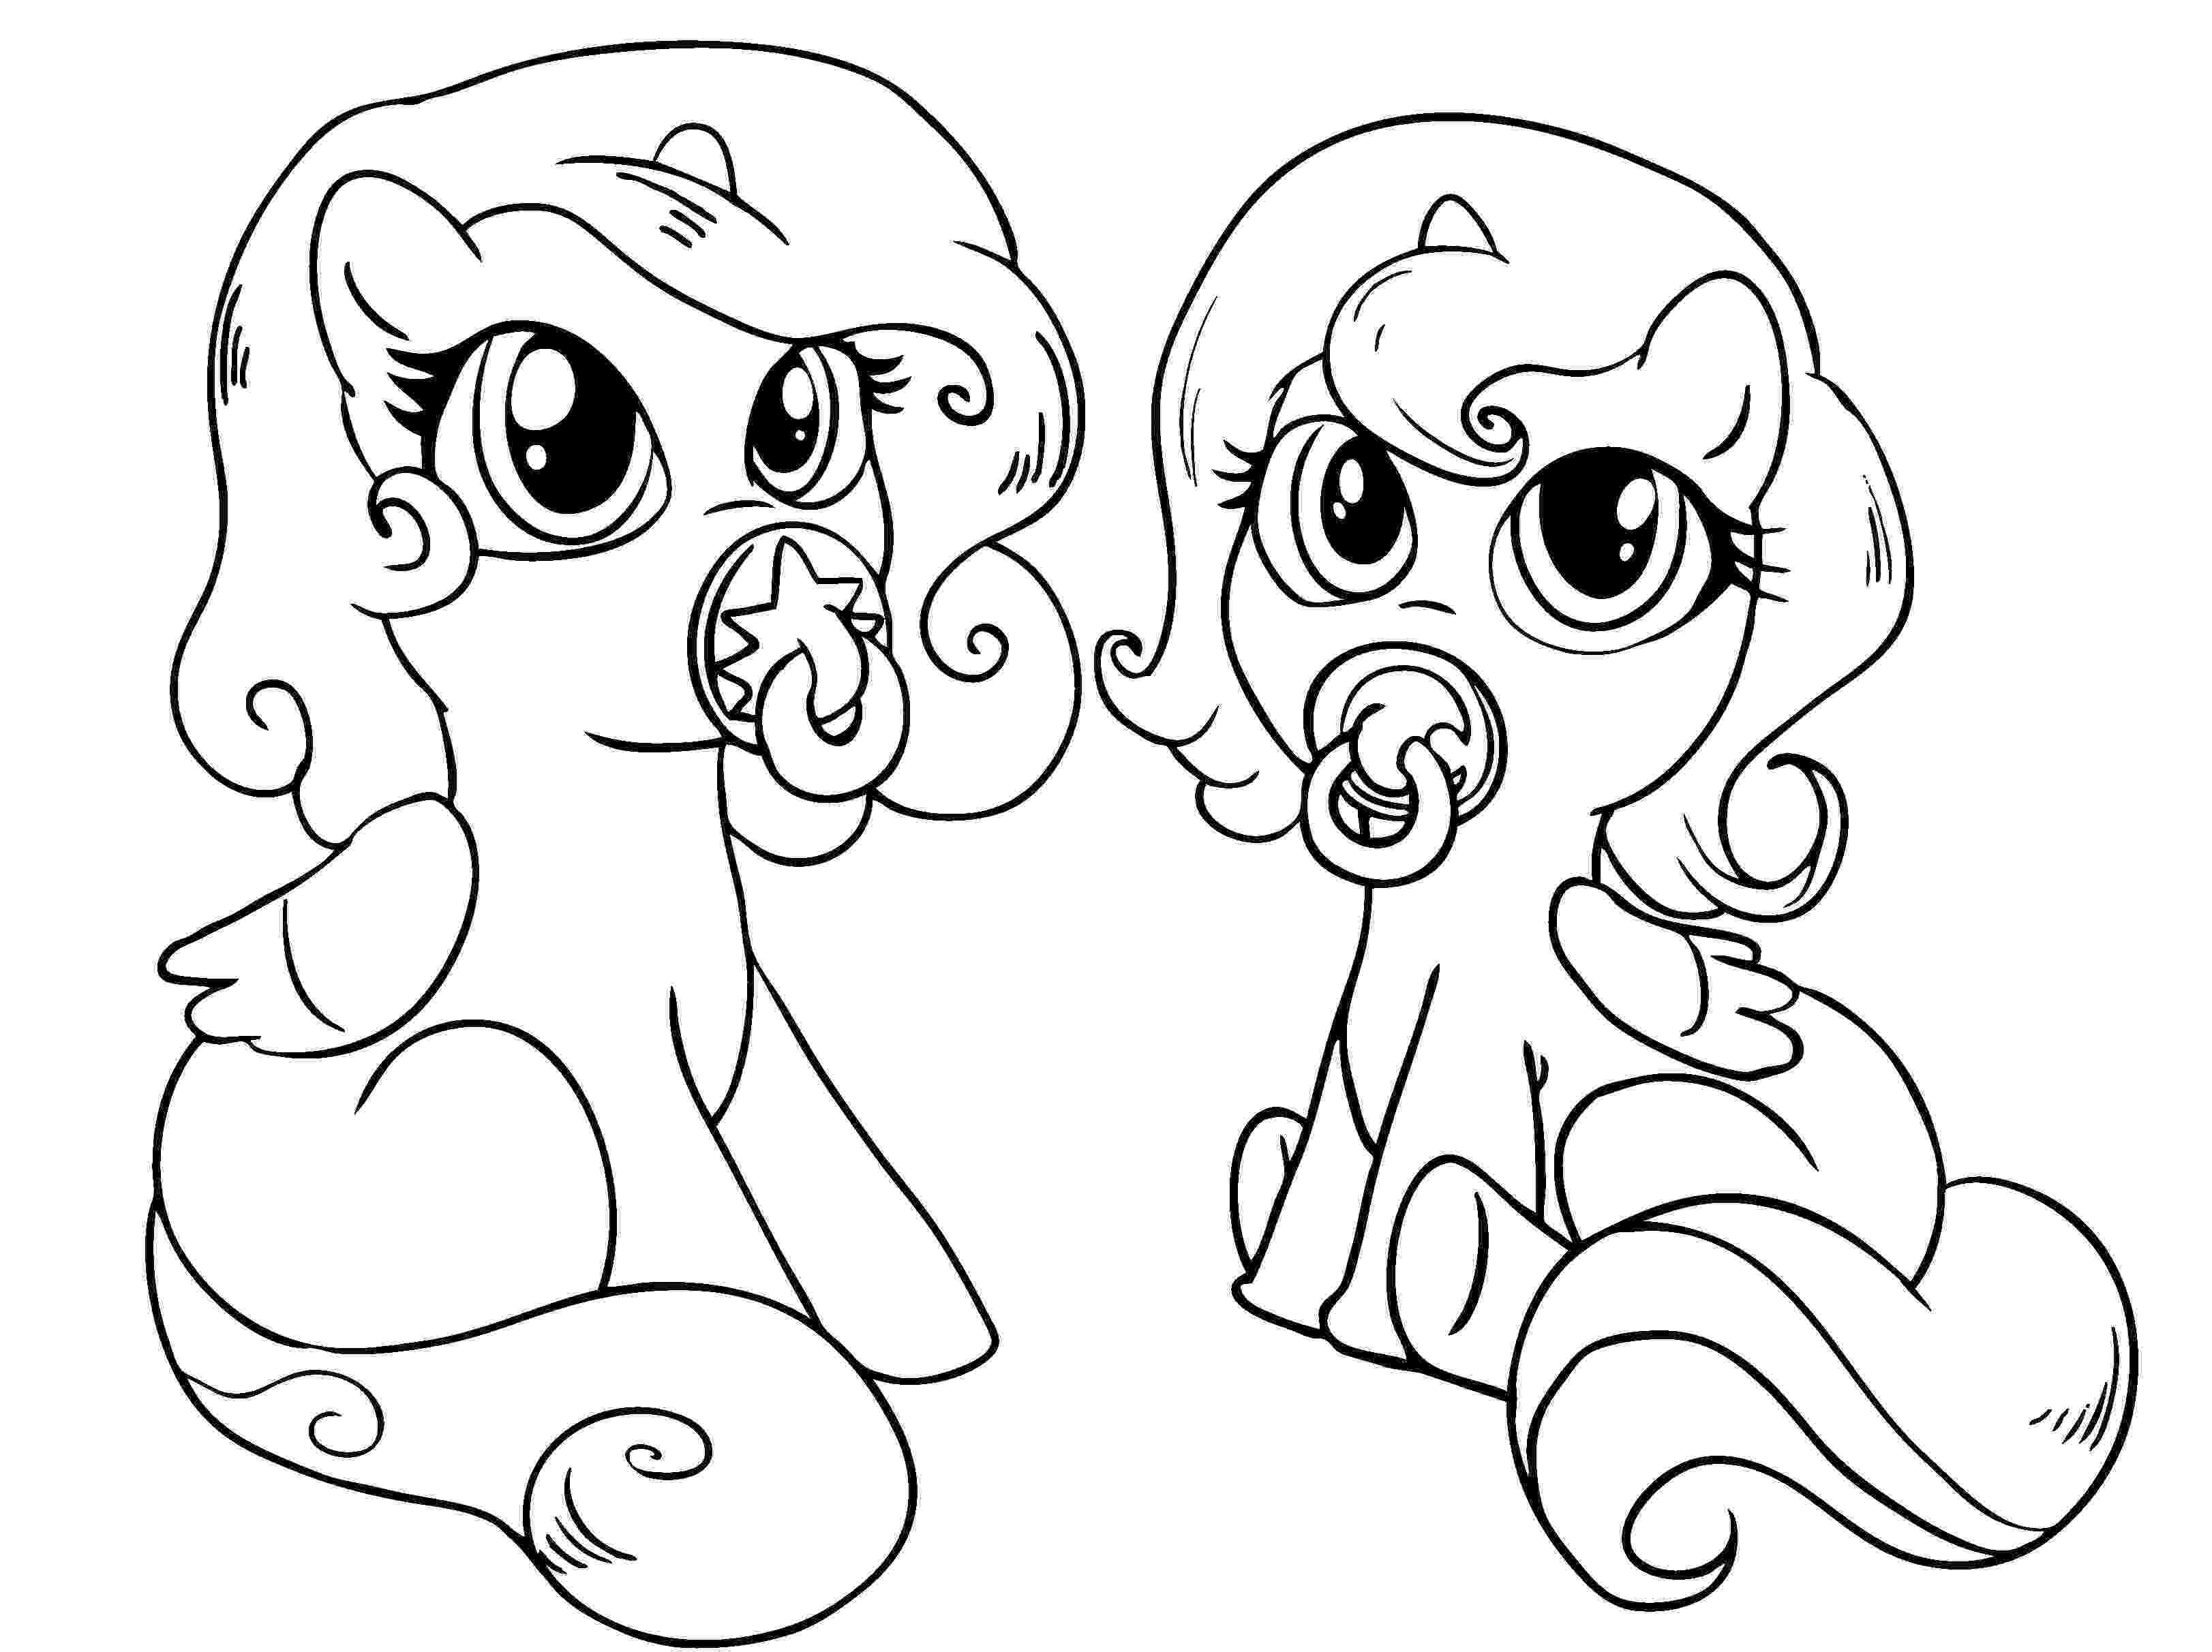 colouring pages pony free printable my little pony coloring pages for kids pony colouring pages 1 2